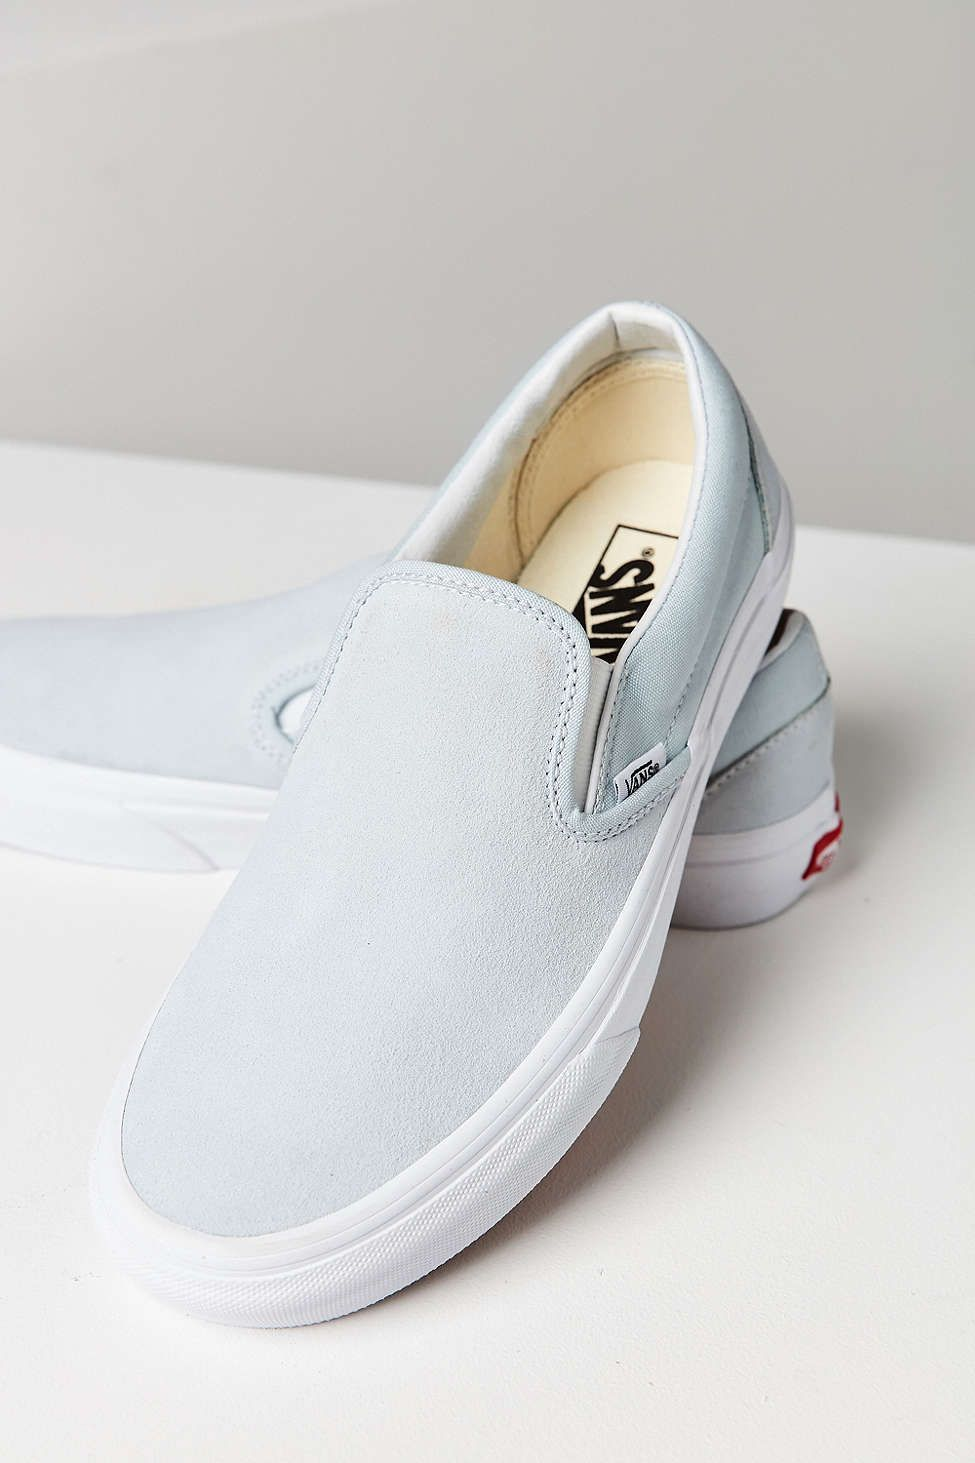 af3df2ea547 vans pastel suede slip-on sneakers